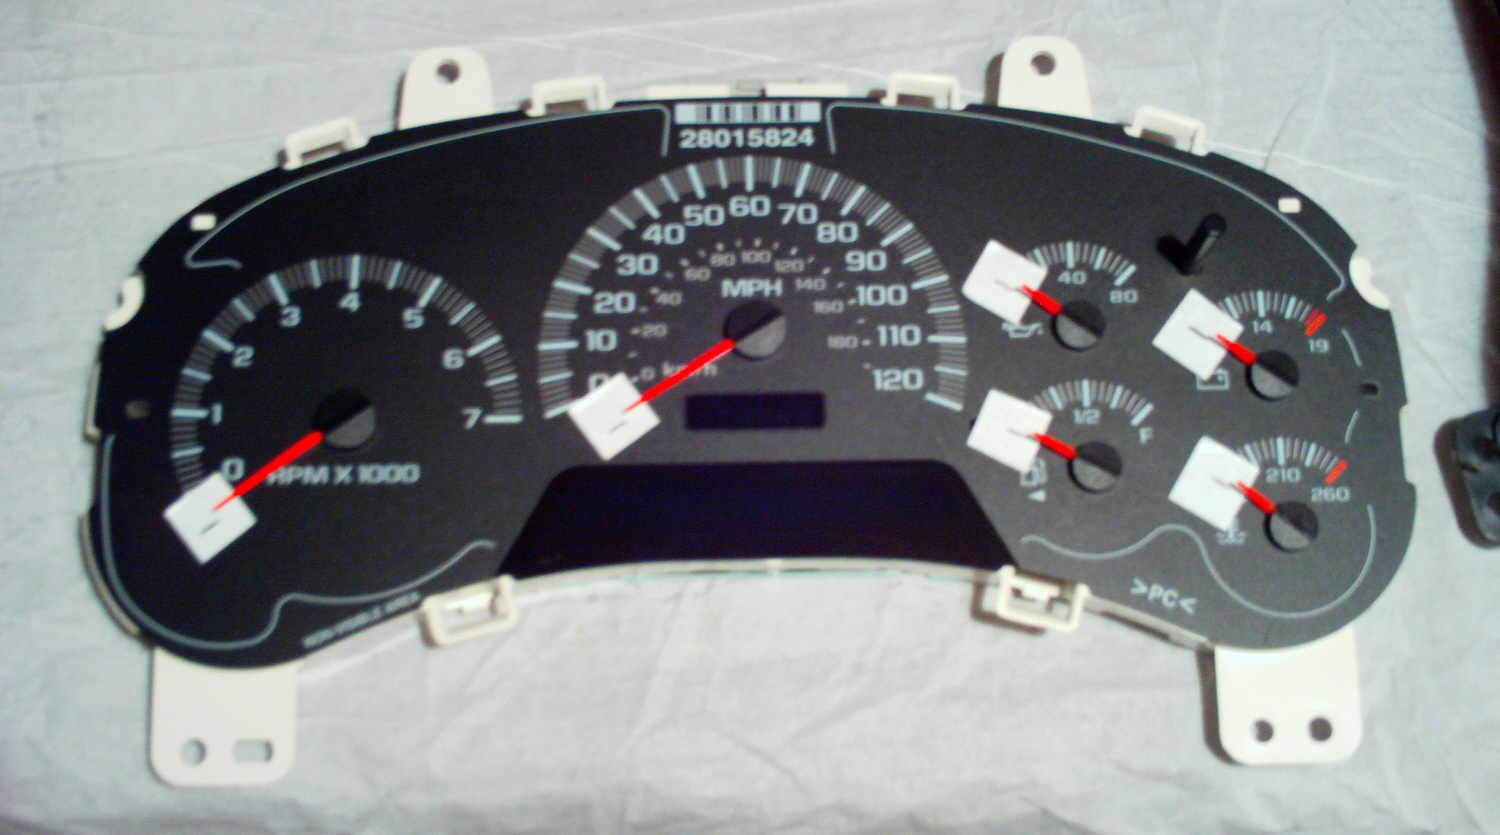 2005 Chevrolet Trailblazer Instrument Cluster Stepper Motor Replacement